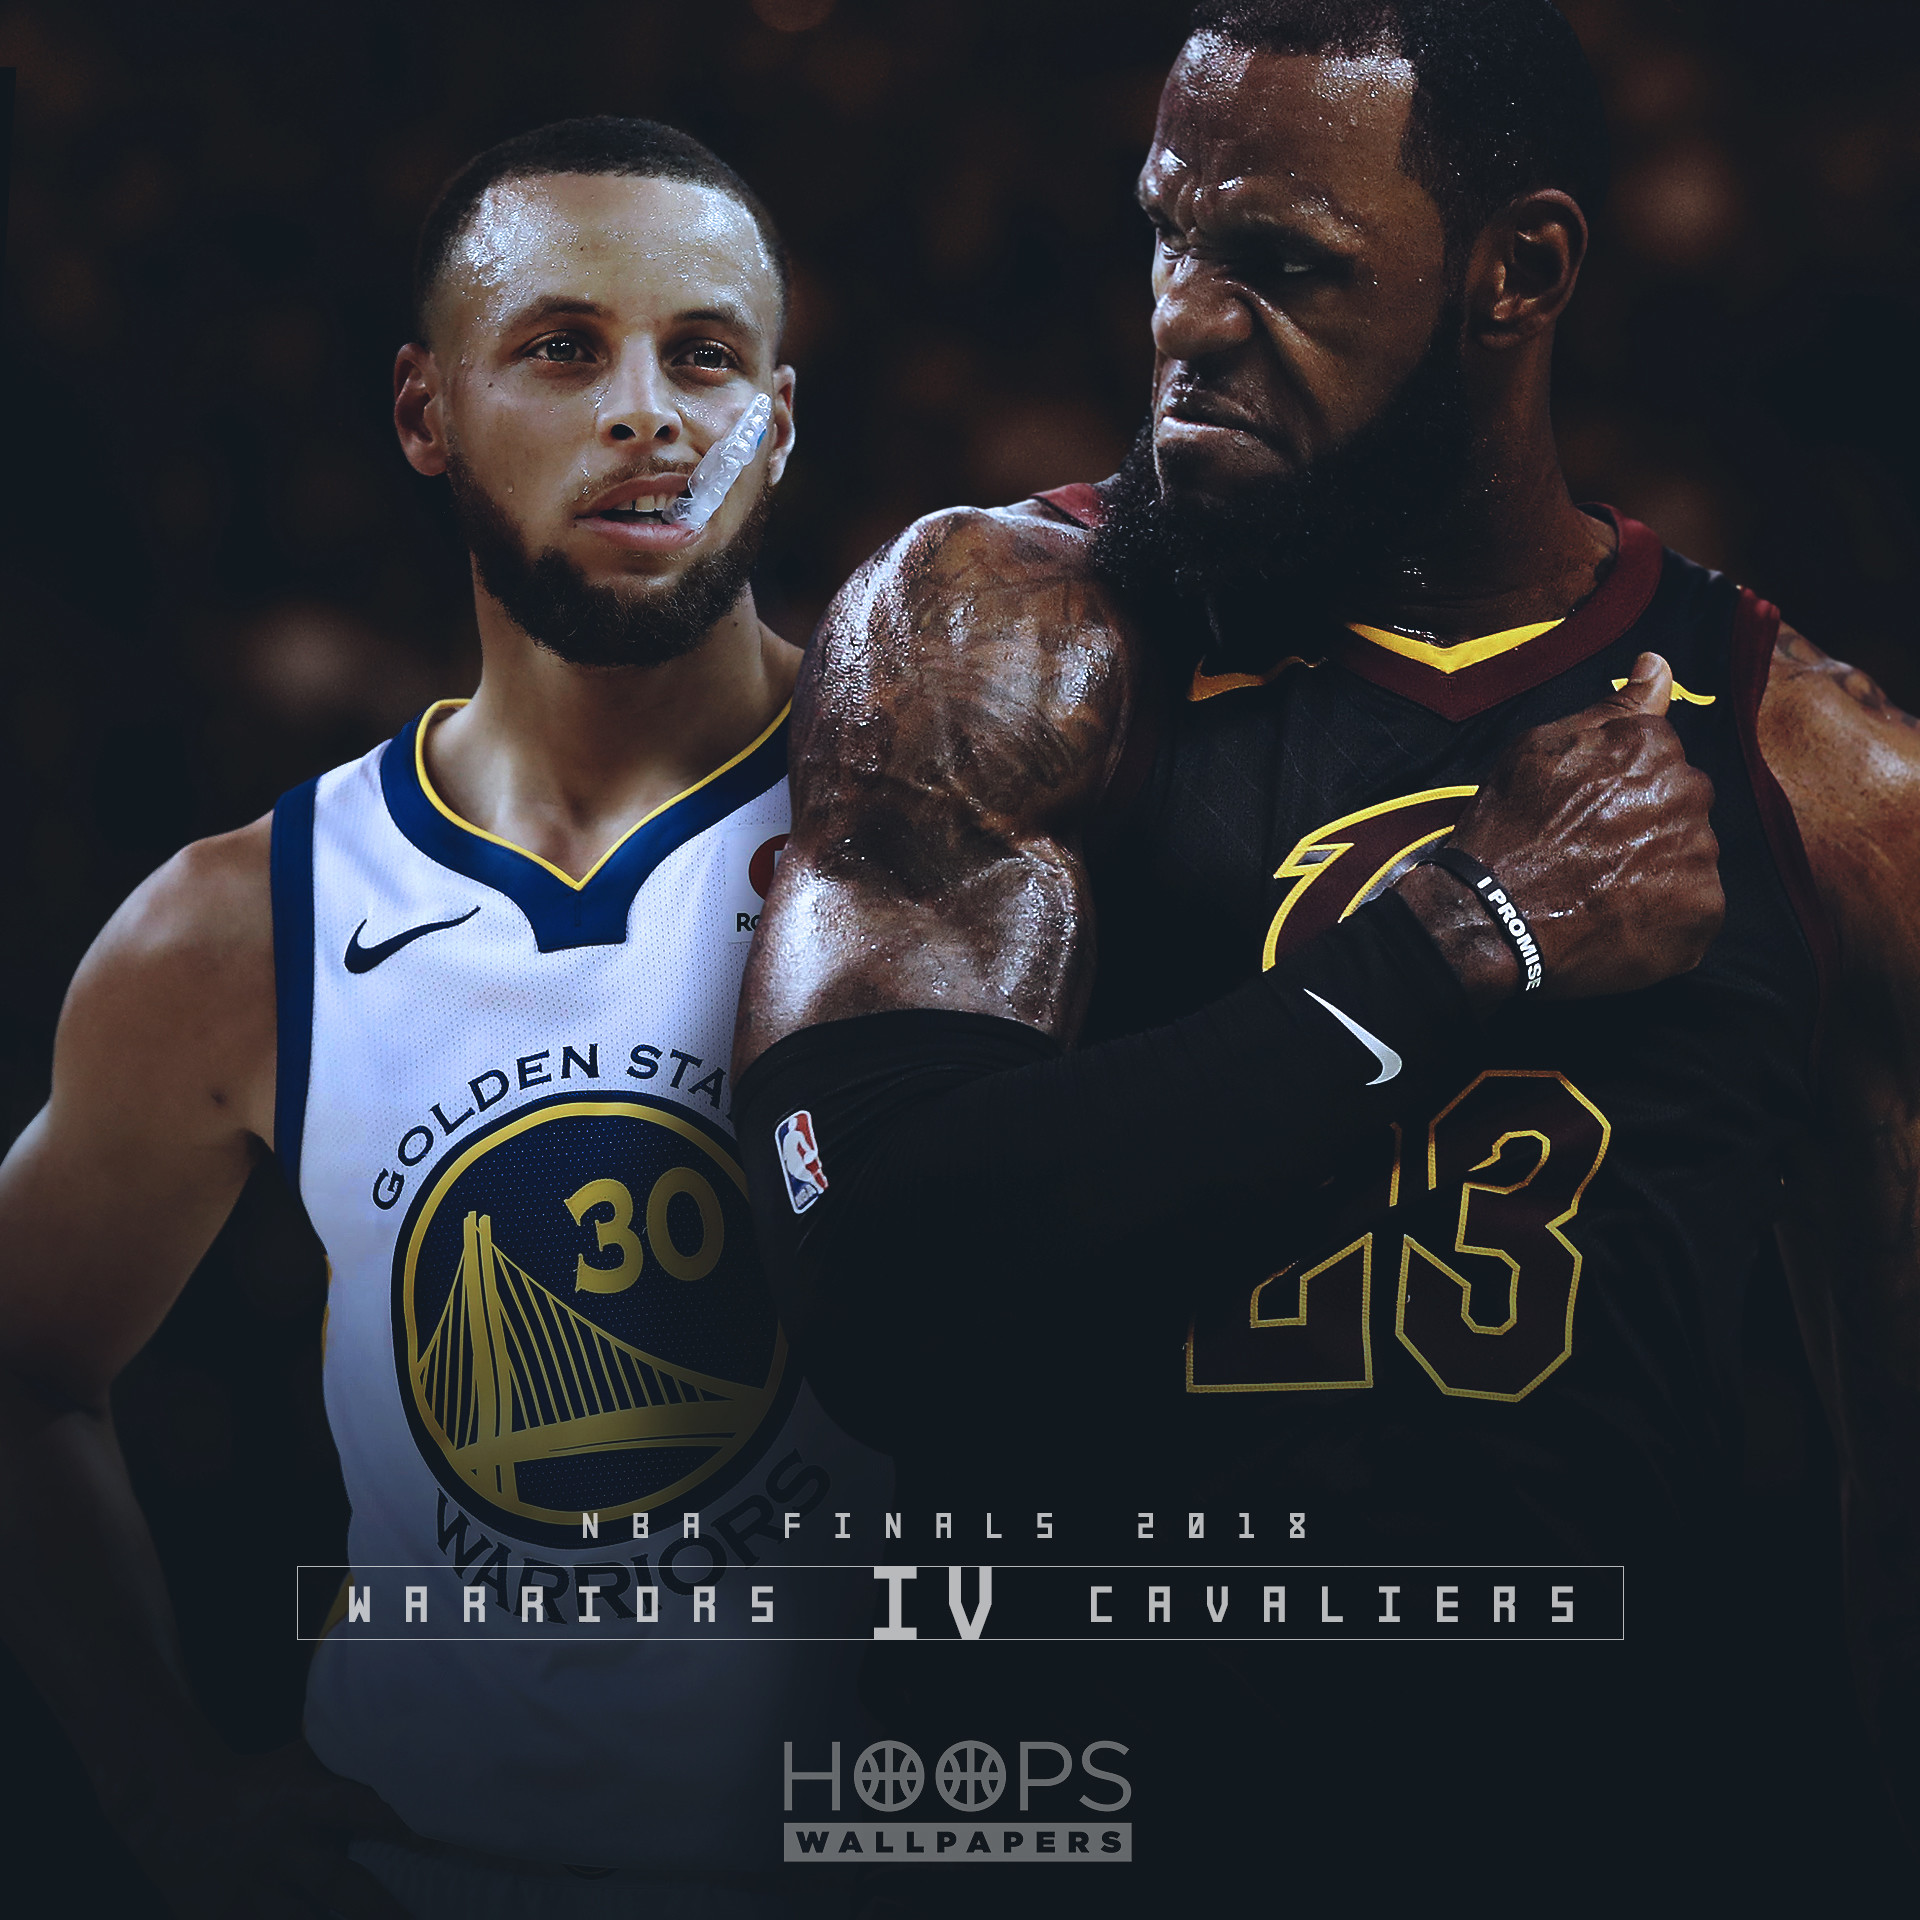 1920x1080 This Is The Only LeBron James NBA Finals Hype Video Youll Ever Need To See